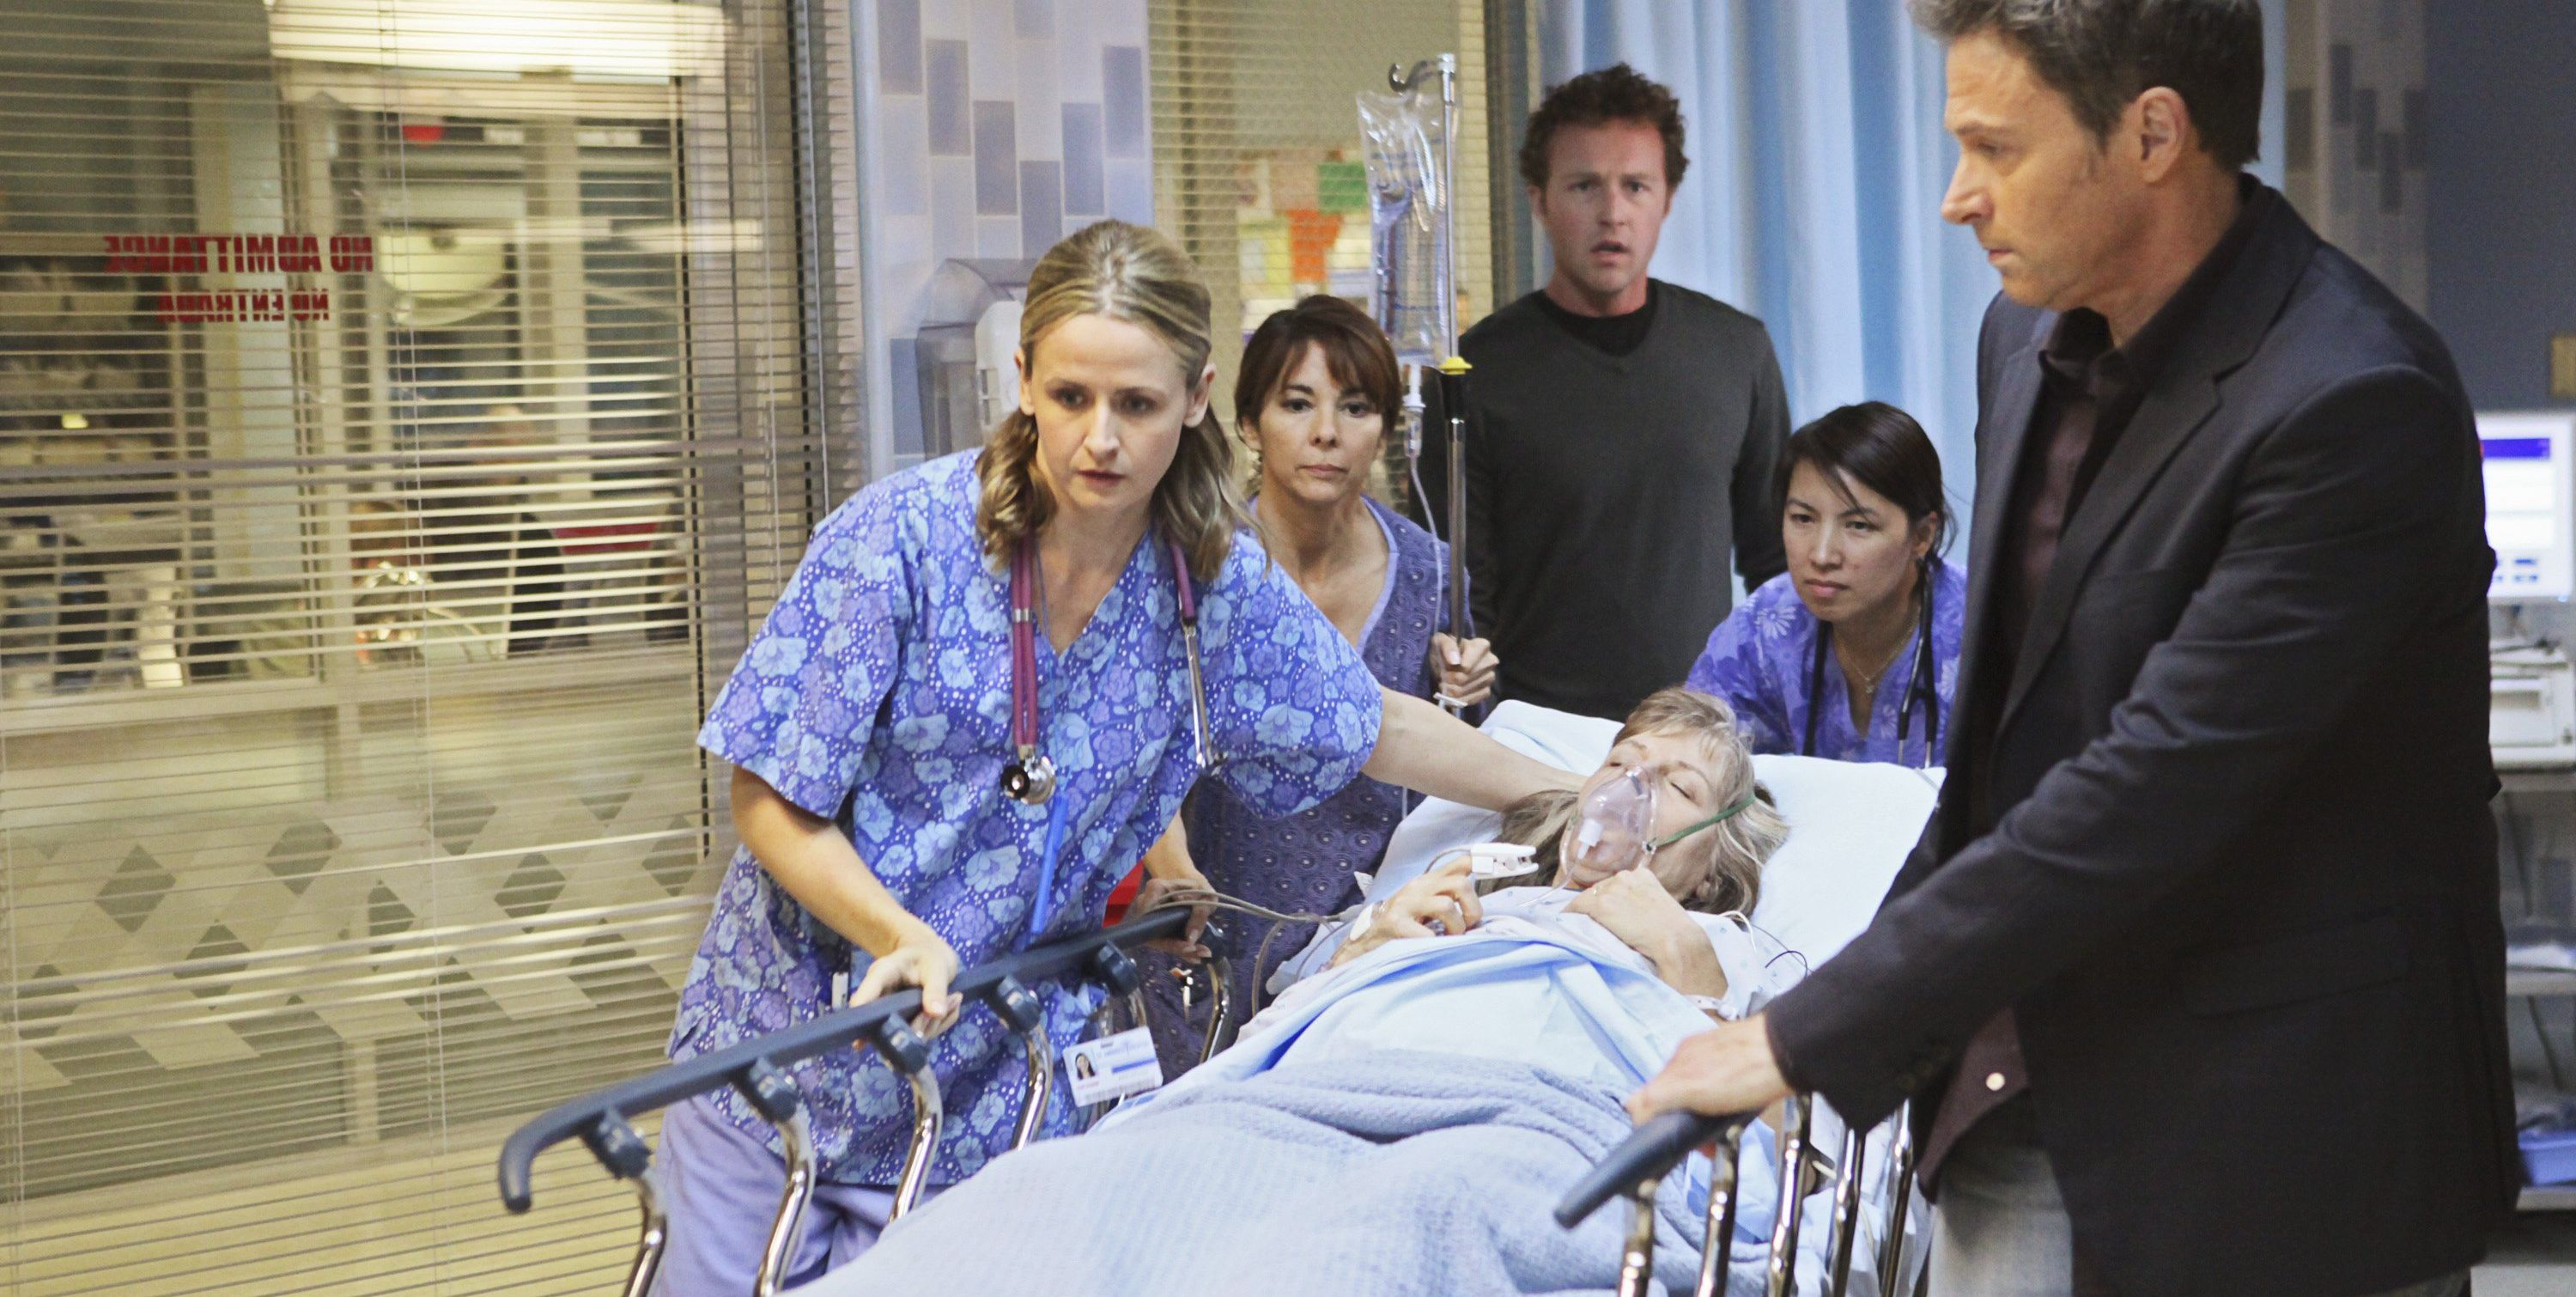 10 Medical Shows You'll Want to Binge Watch When Grey's Anatomy Ends